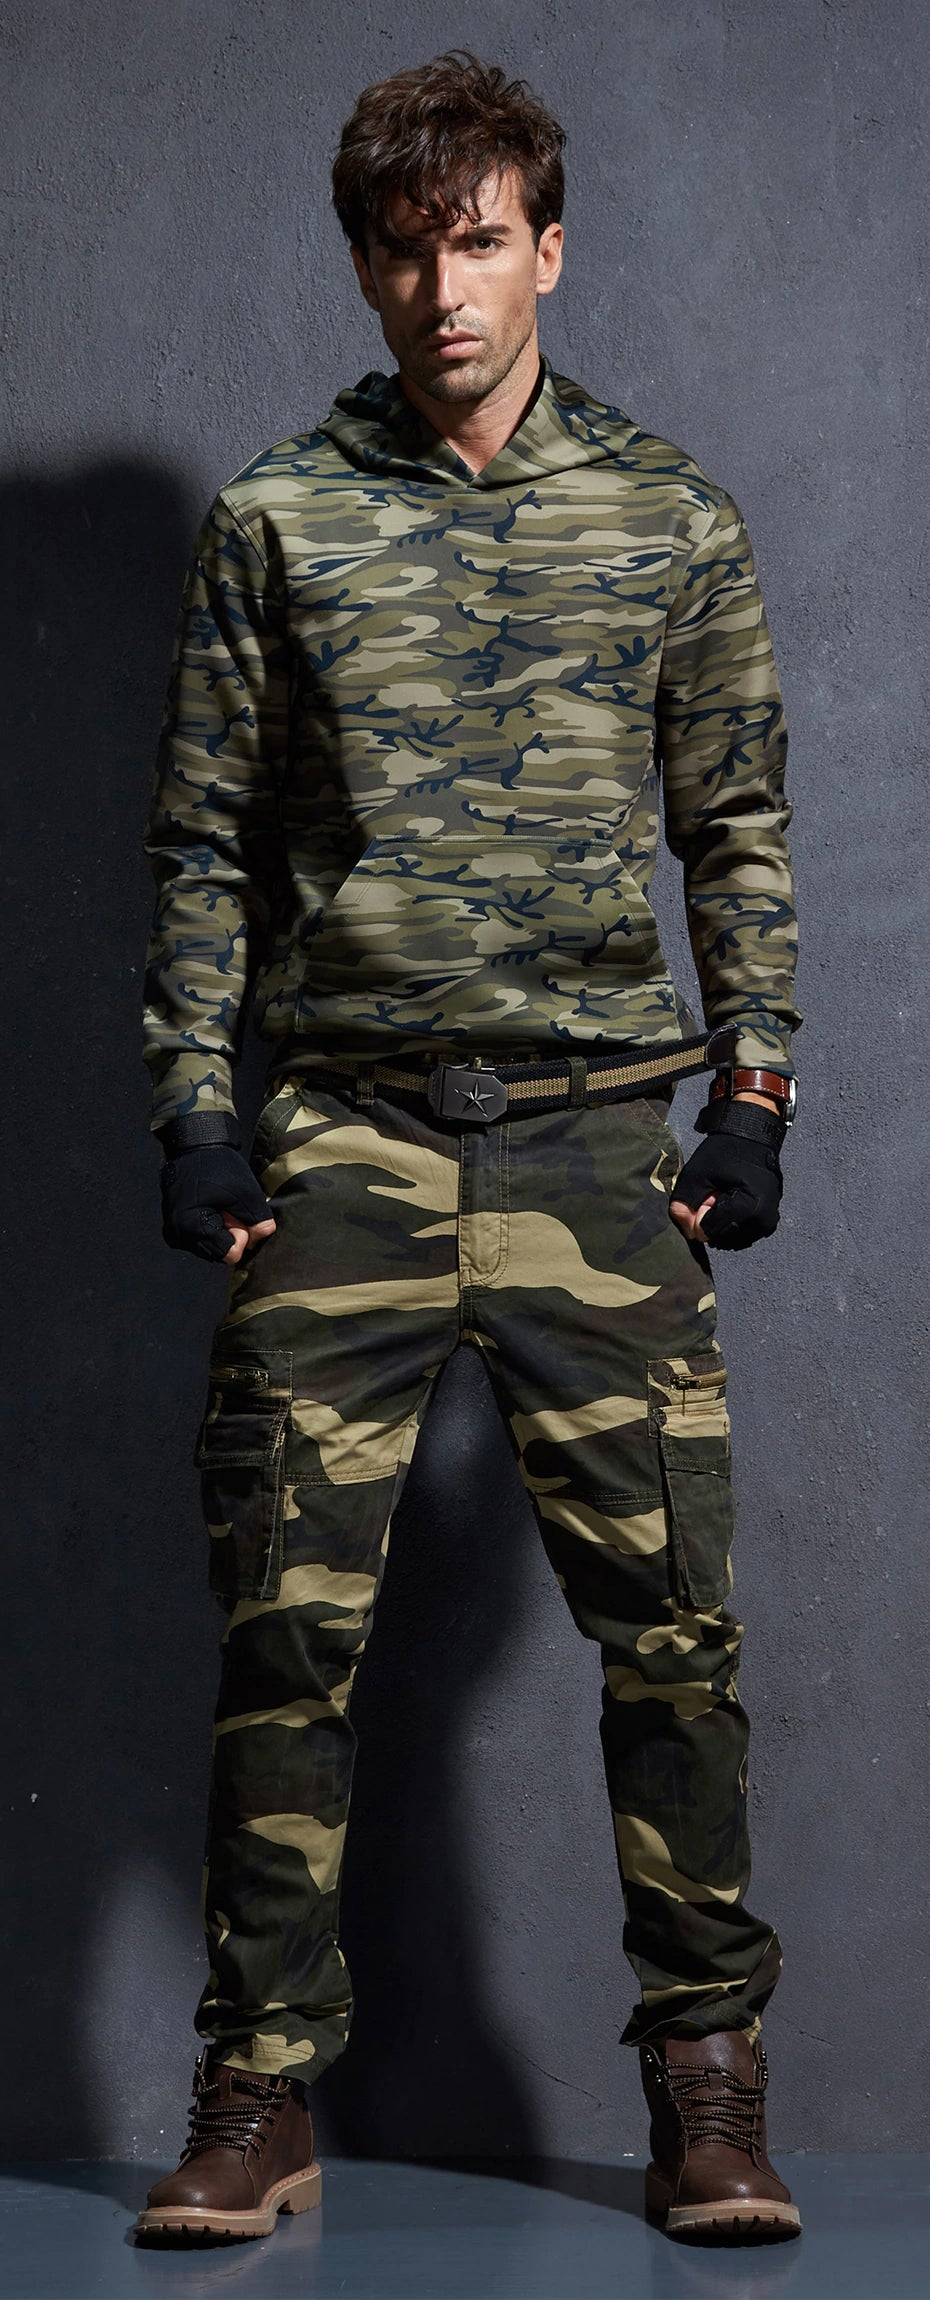 Camo Pants For Mens Military Style Tactical Cargo Pants Army Camouflage Straight Trousers Multi Pocket Camo Joggers - 2 Colors